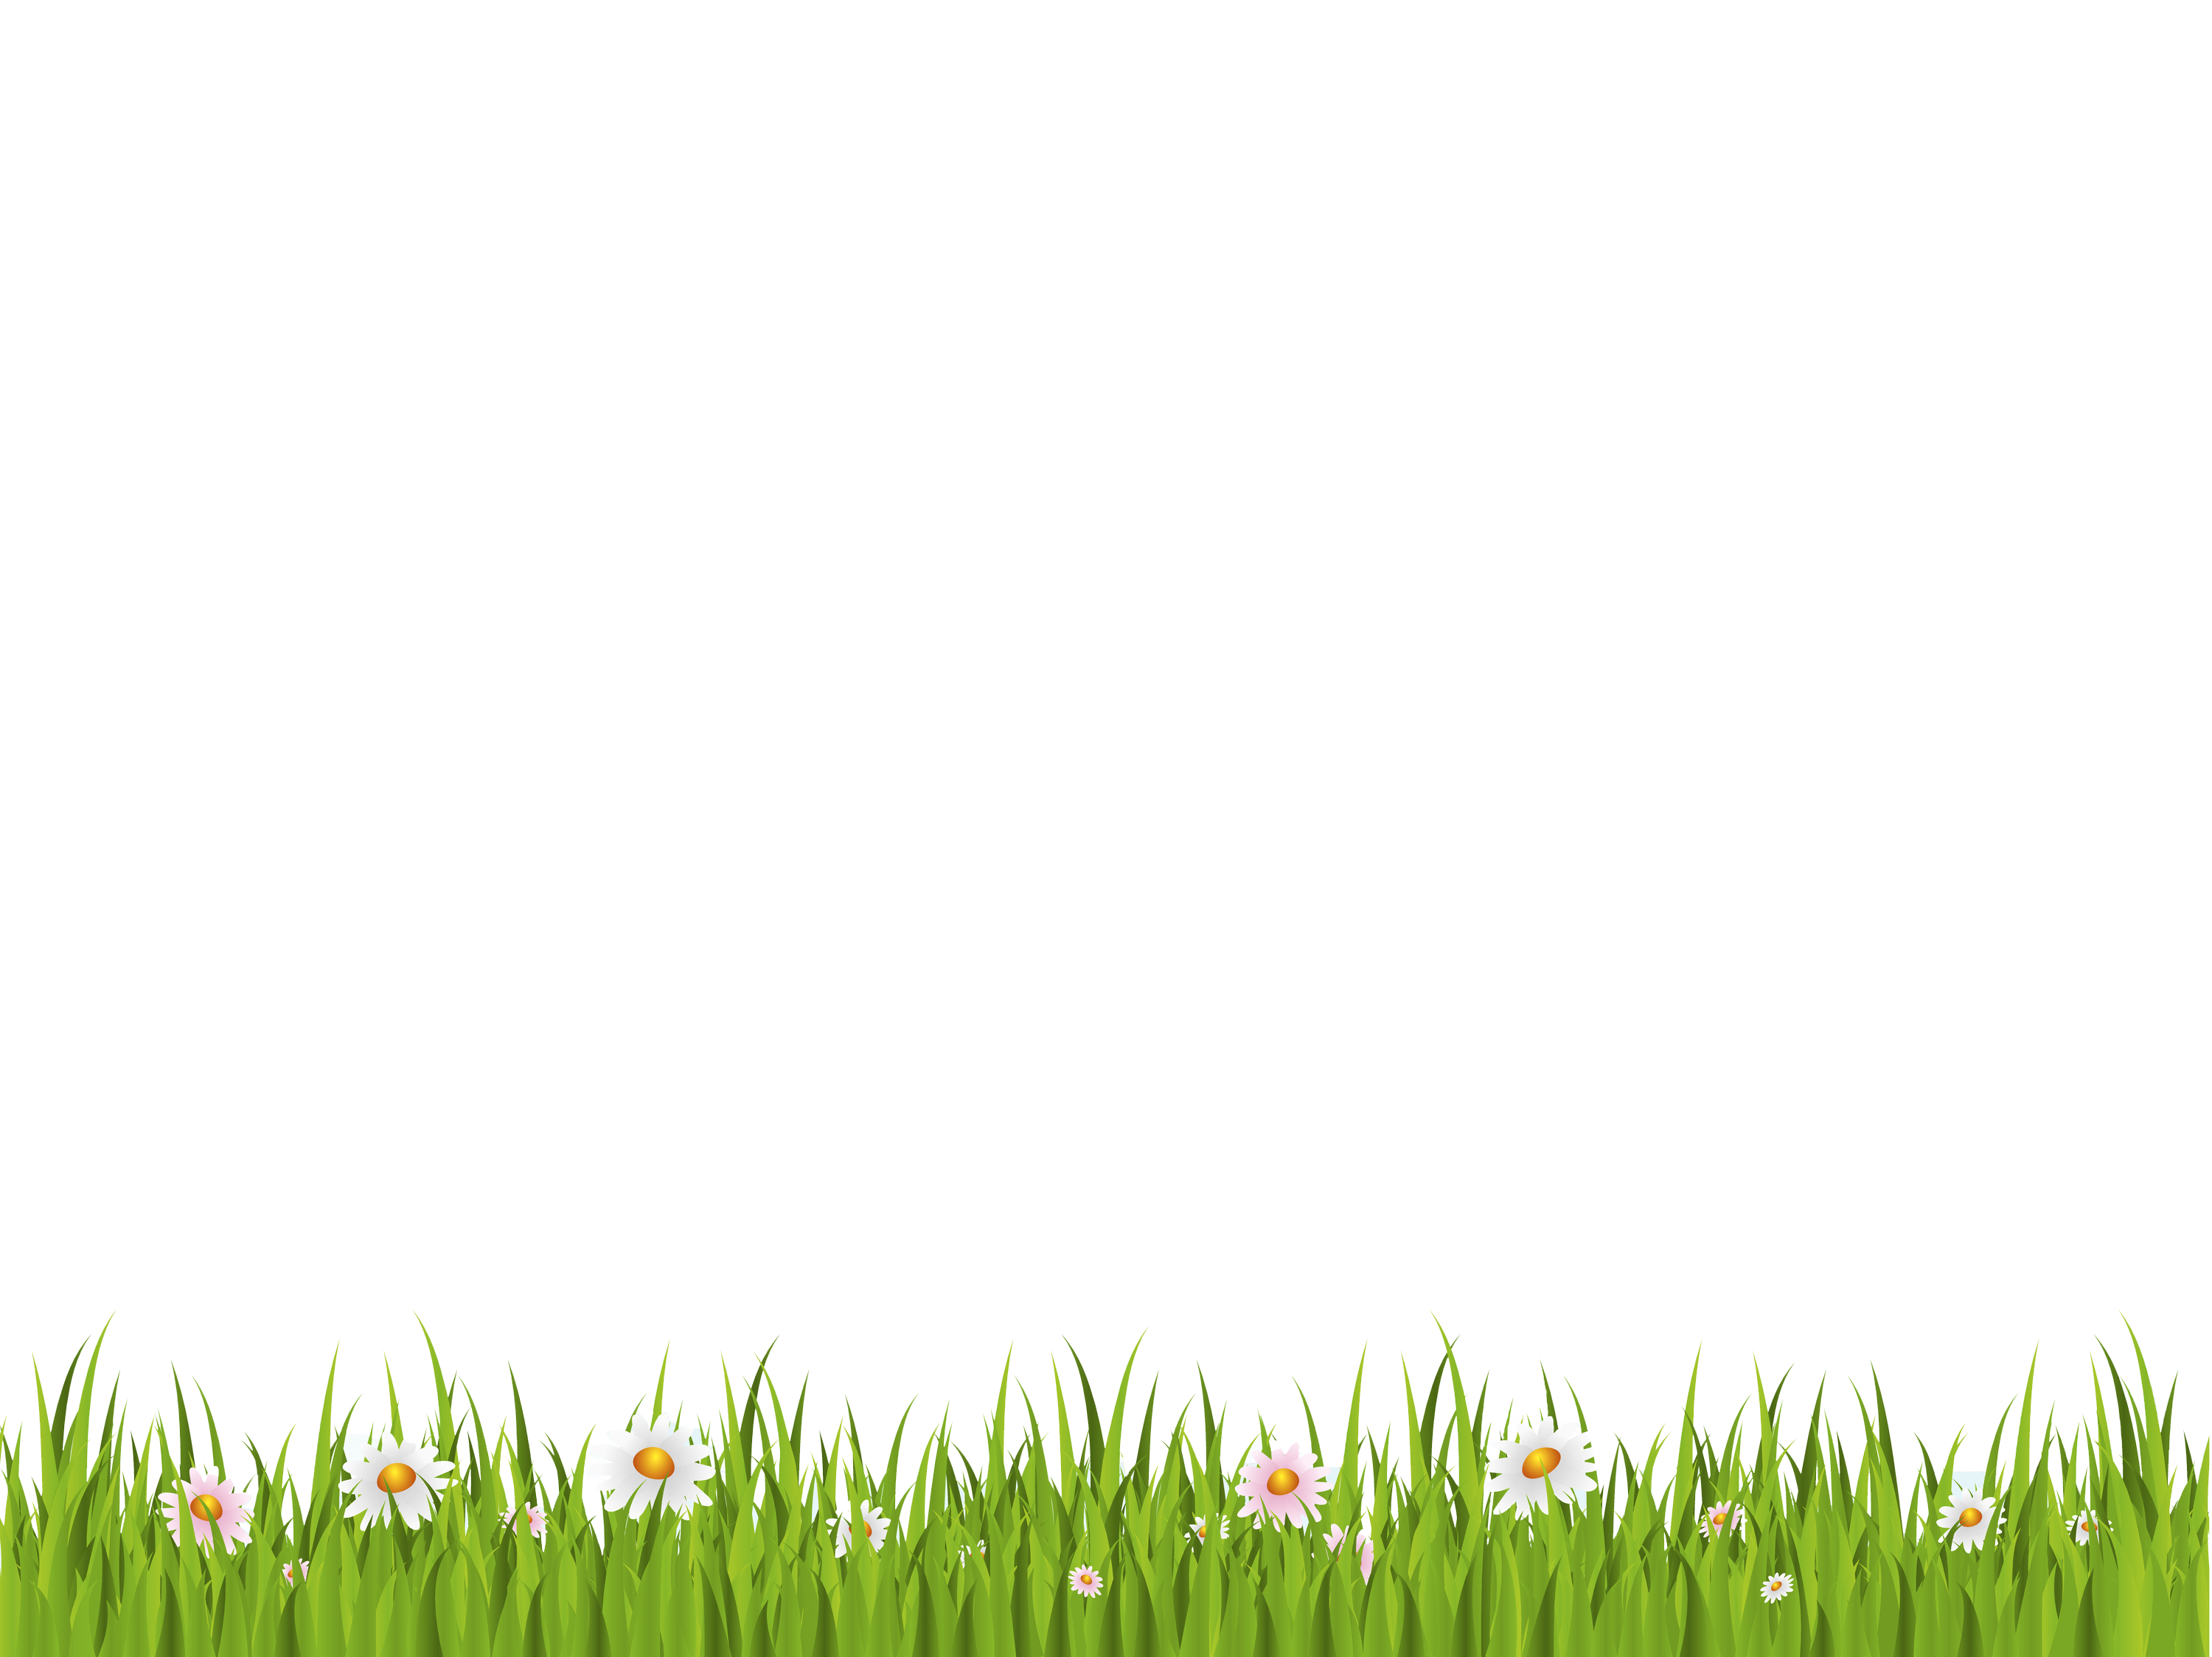 clipart library Grass and sky background clipart. Green two isolated stock